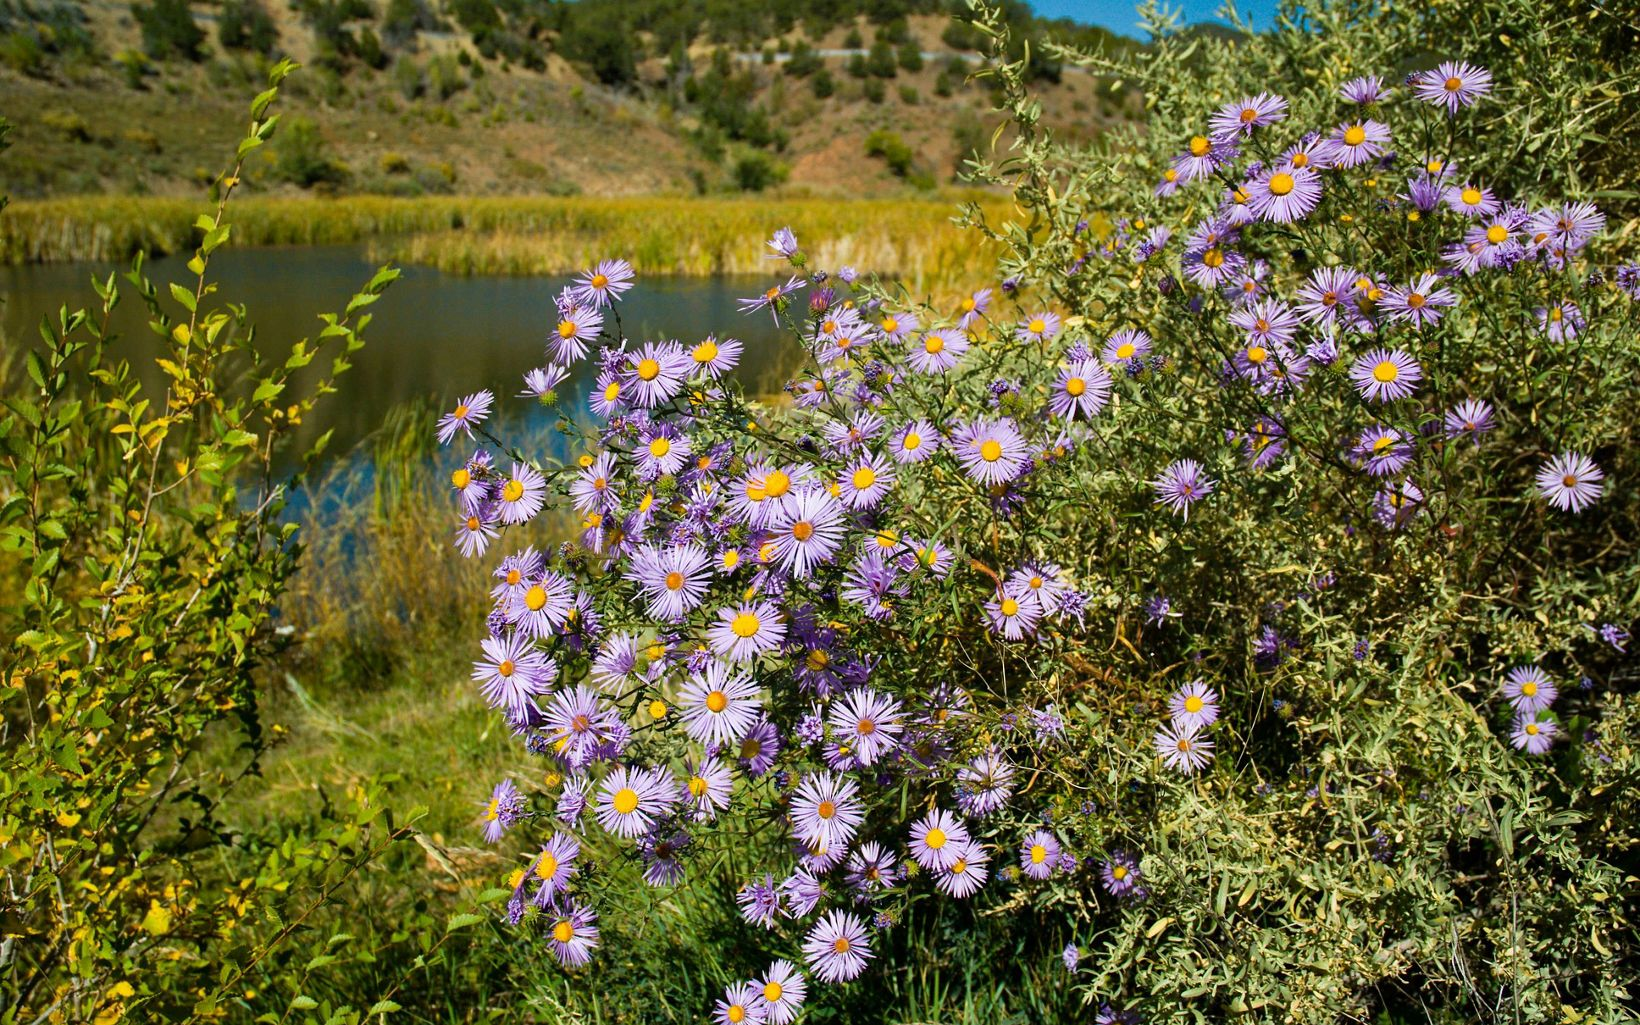 Asters near pond in Santa Fe Canyon, New Mexico.